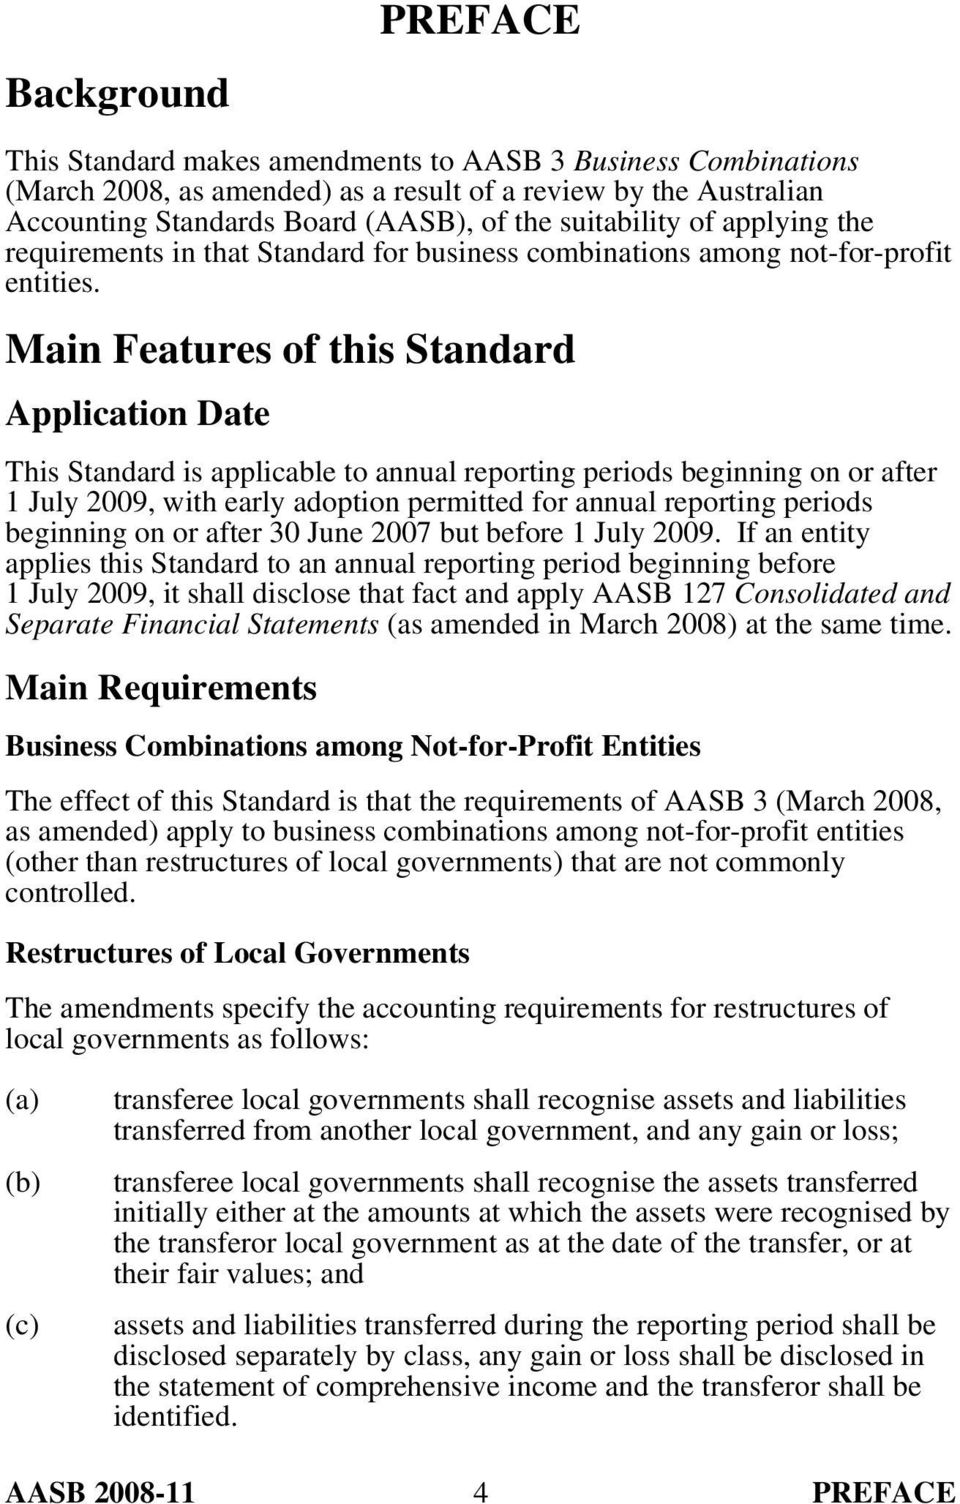 Main Features of this Standard Application Date This Standard is applicable to annual reporting periods beginning on or after 1 July 2009, with early adoption permitted for annual reporting periods